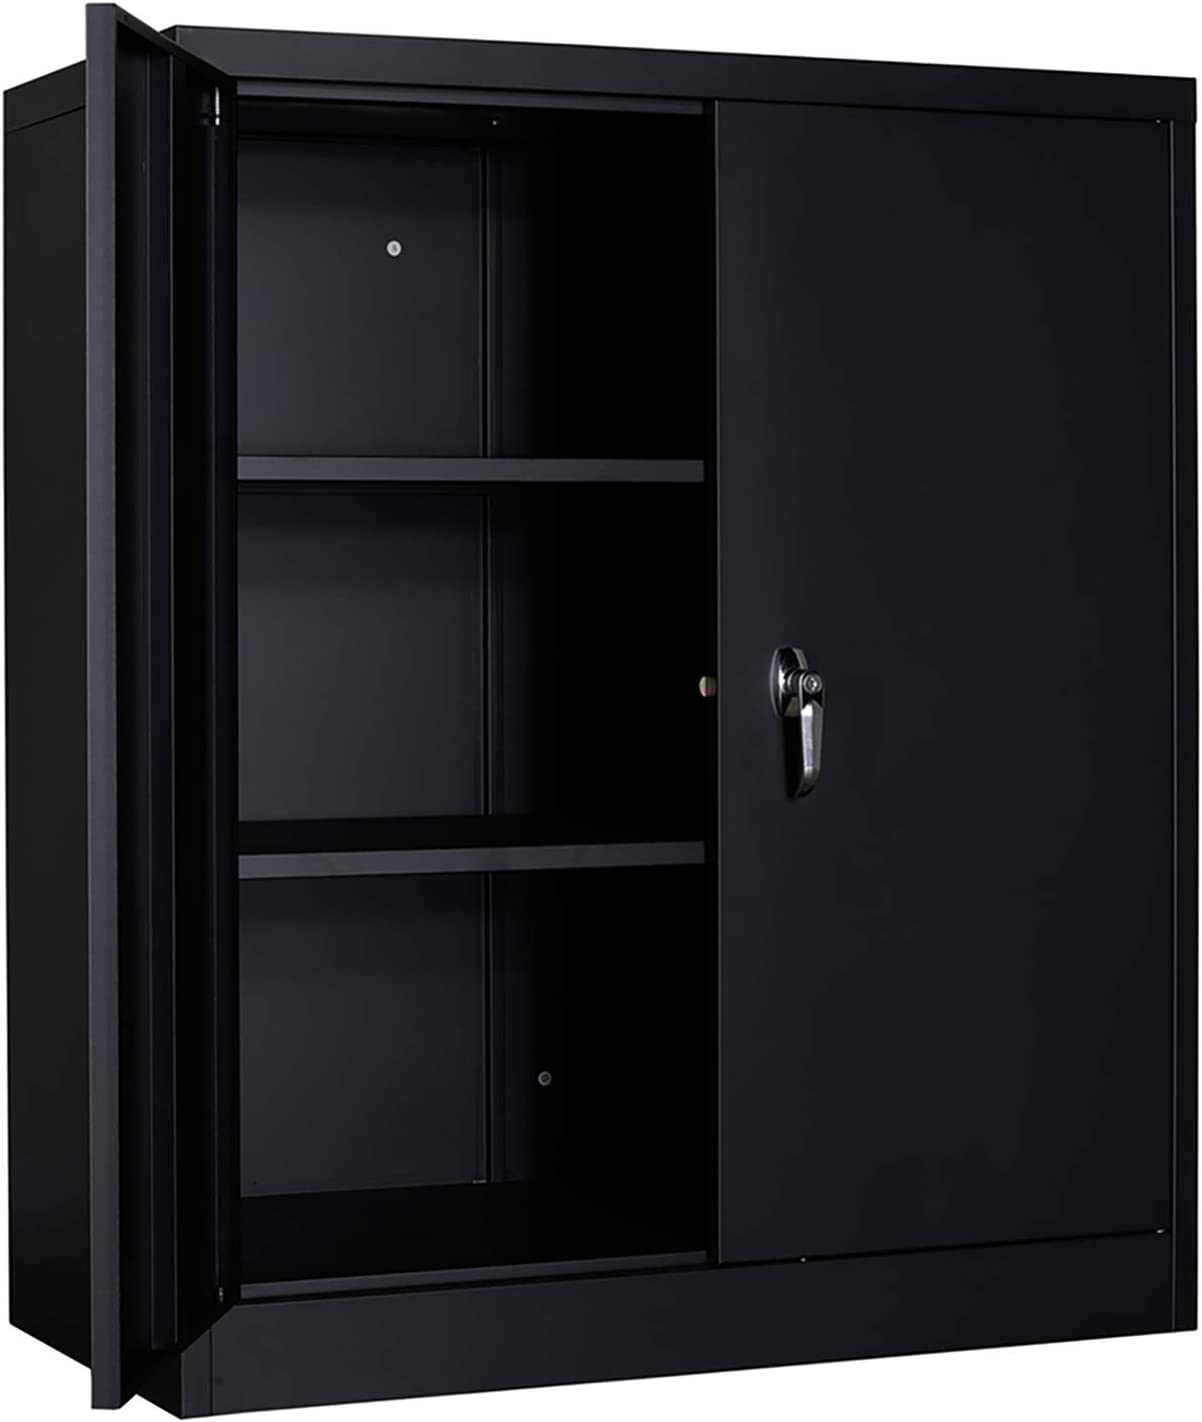 """GREATMEET Metal Cabinets Storage with 2 Adjustable Shelves, Steel Storage Cabinet,36""""L x 18""""W x 41.6""""H,Metal Storage Cabinet with 2 Swing Doors, Counter Height Cabinet Cupboards for Home Office,Black"""